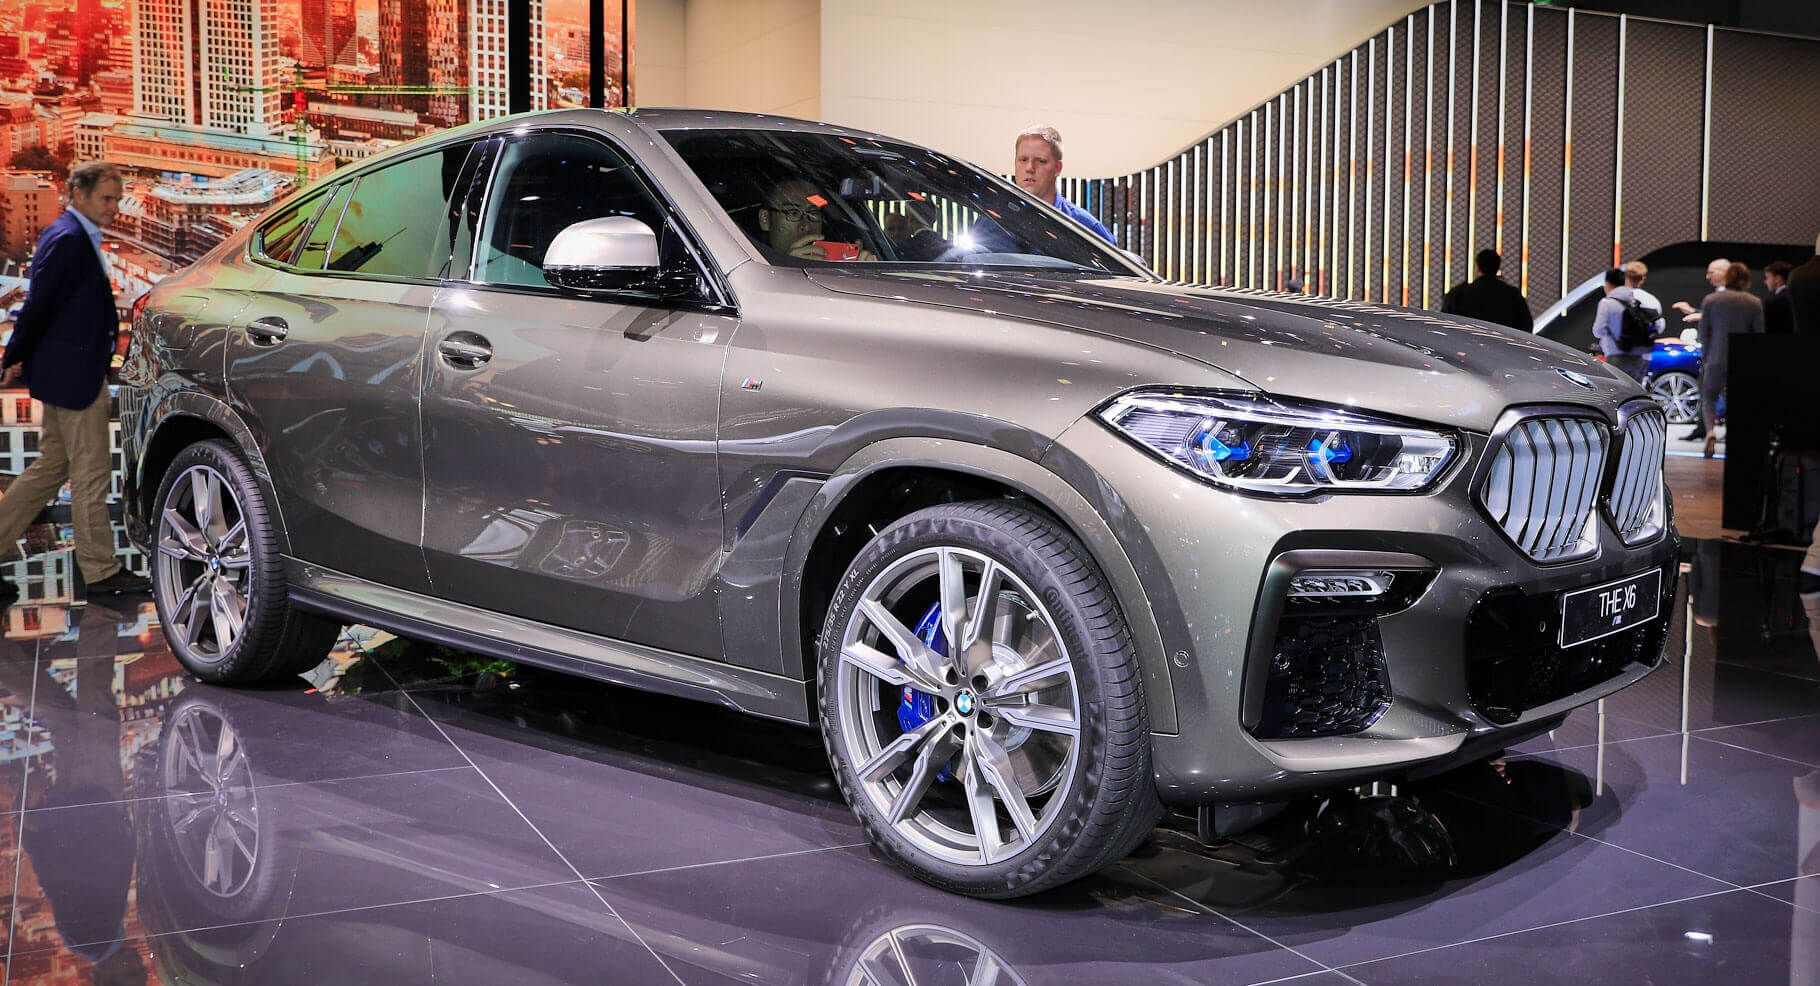 The Bold And The Very Fast 2020 Bmw X6 M50i Lands On Home Soil Bmw Bmwx6 Frankfurtmotorshow Galleries Newcars Cars Carsofinsta Bmw X6 Bmw Living In Car